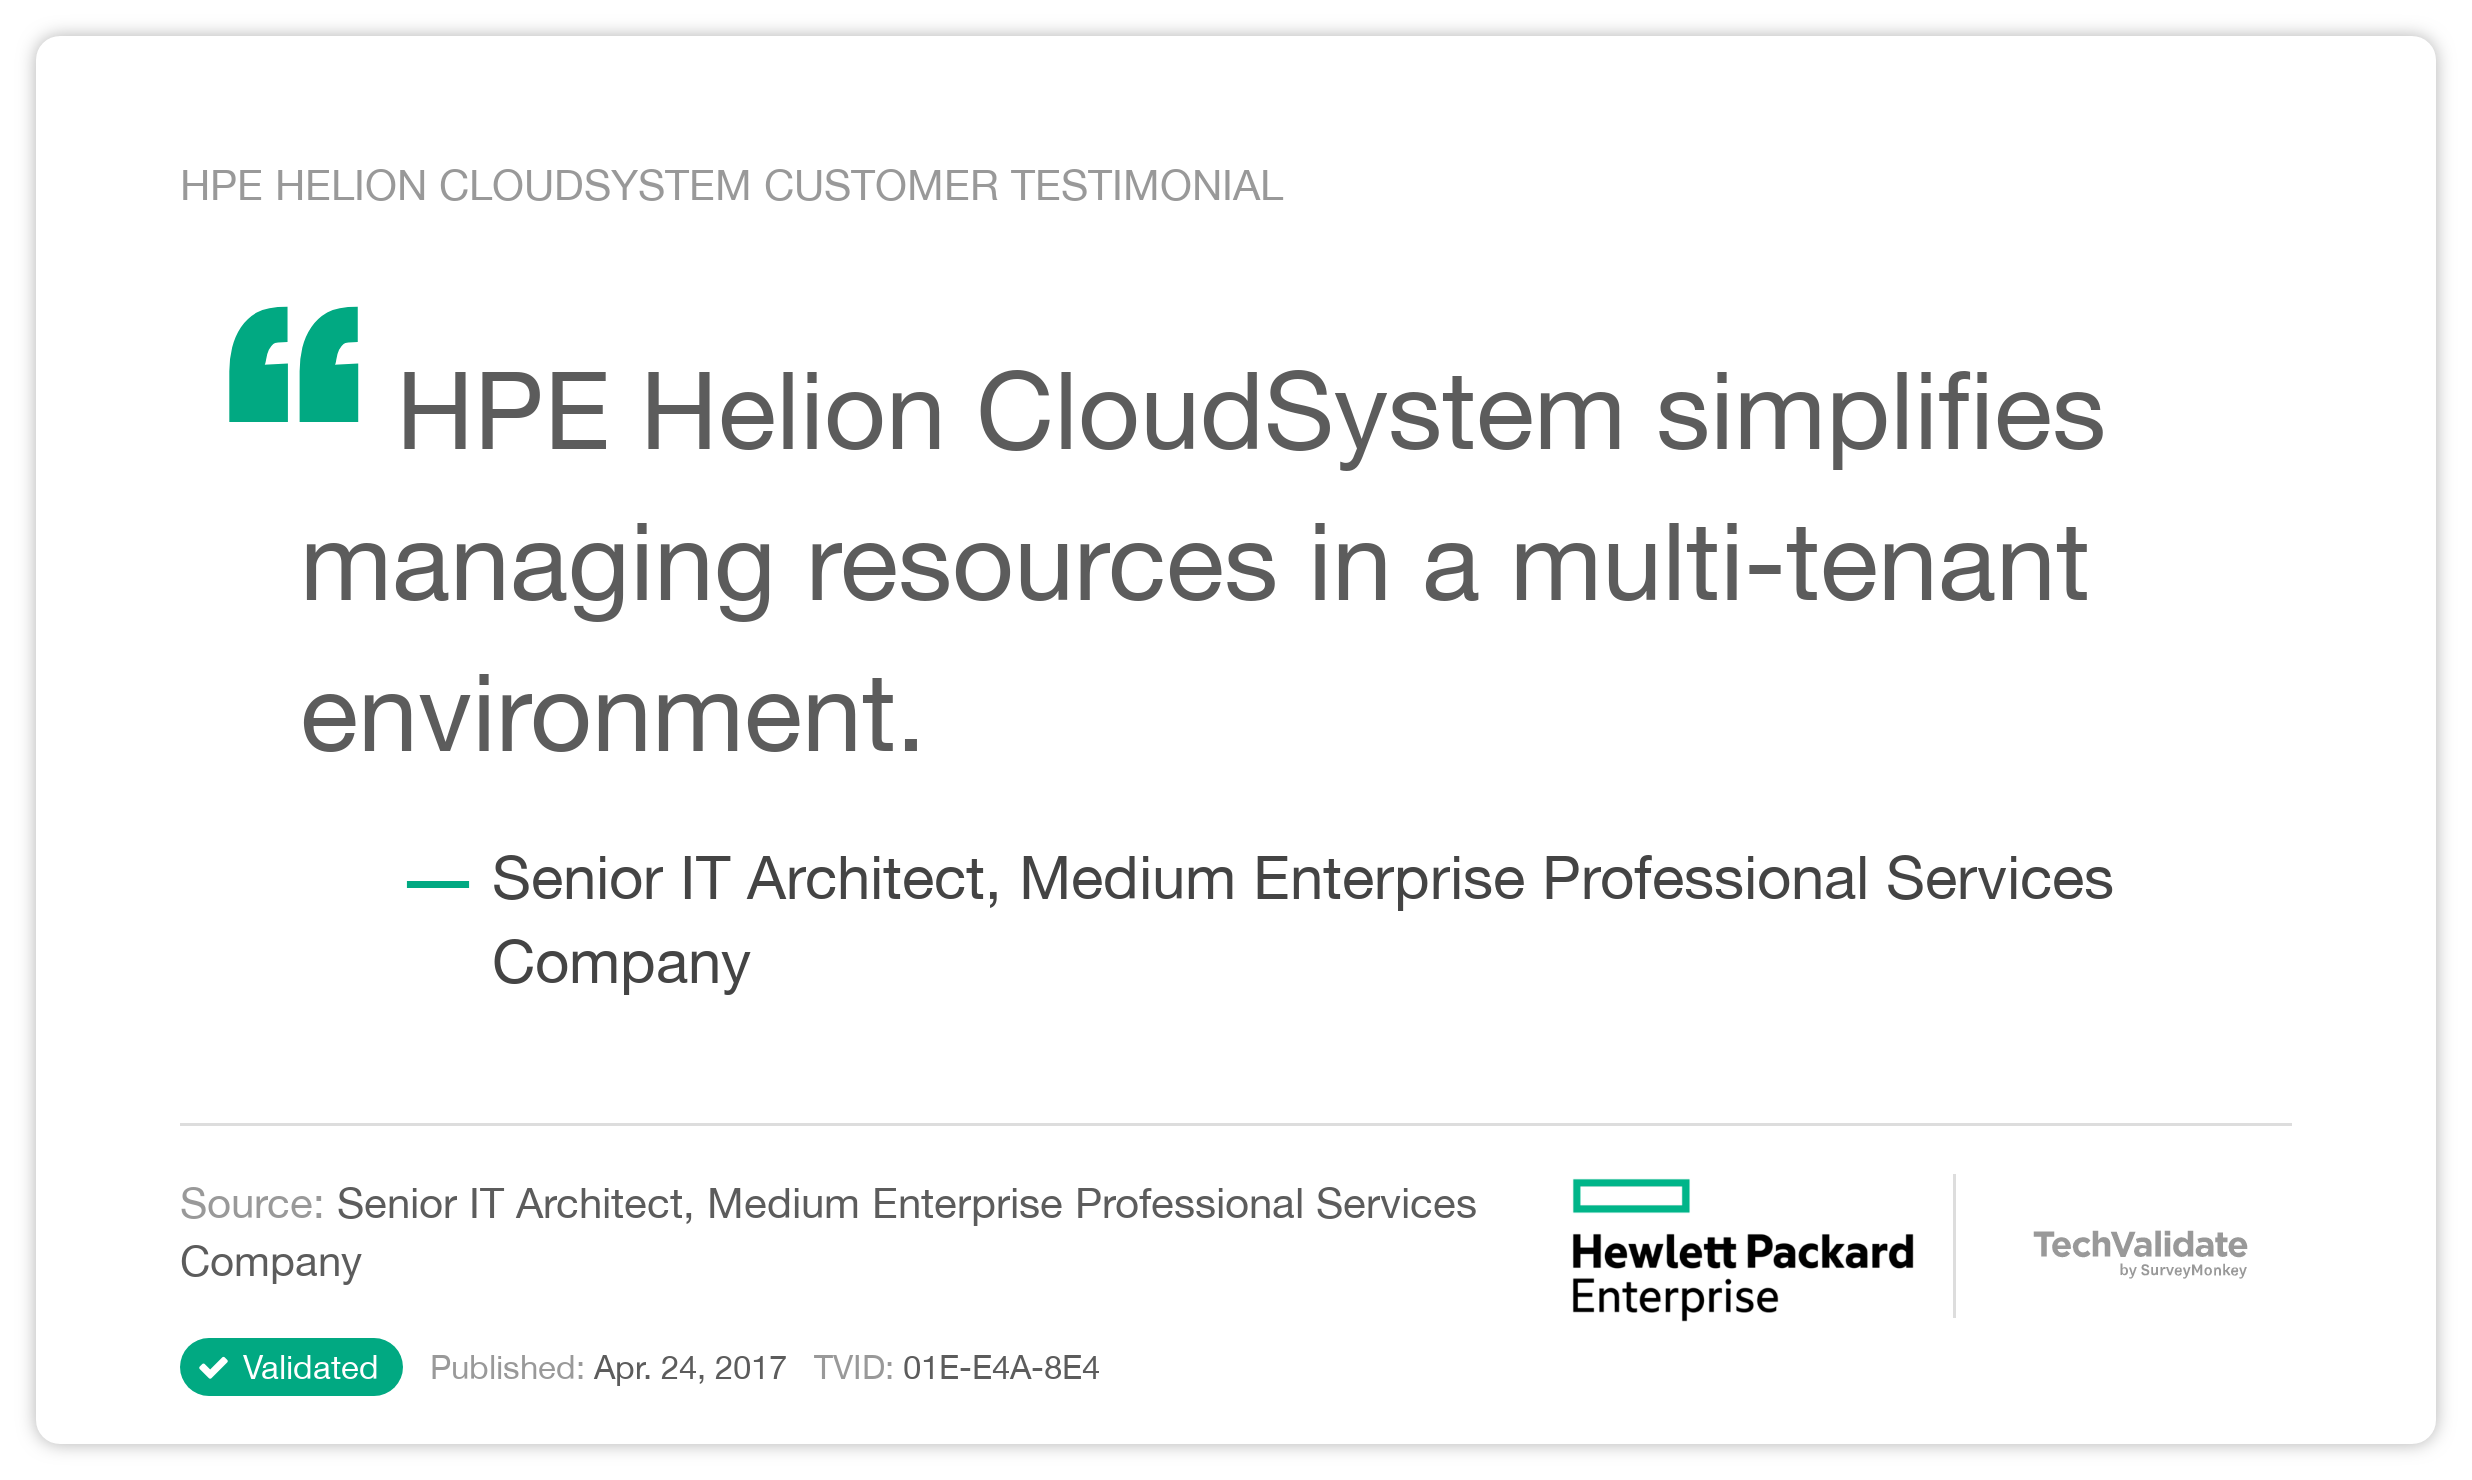 HPE Helion CloudSystem Customer Testimonial